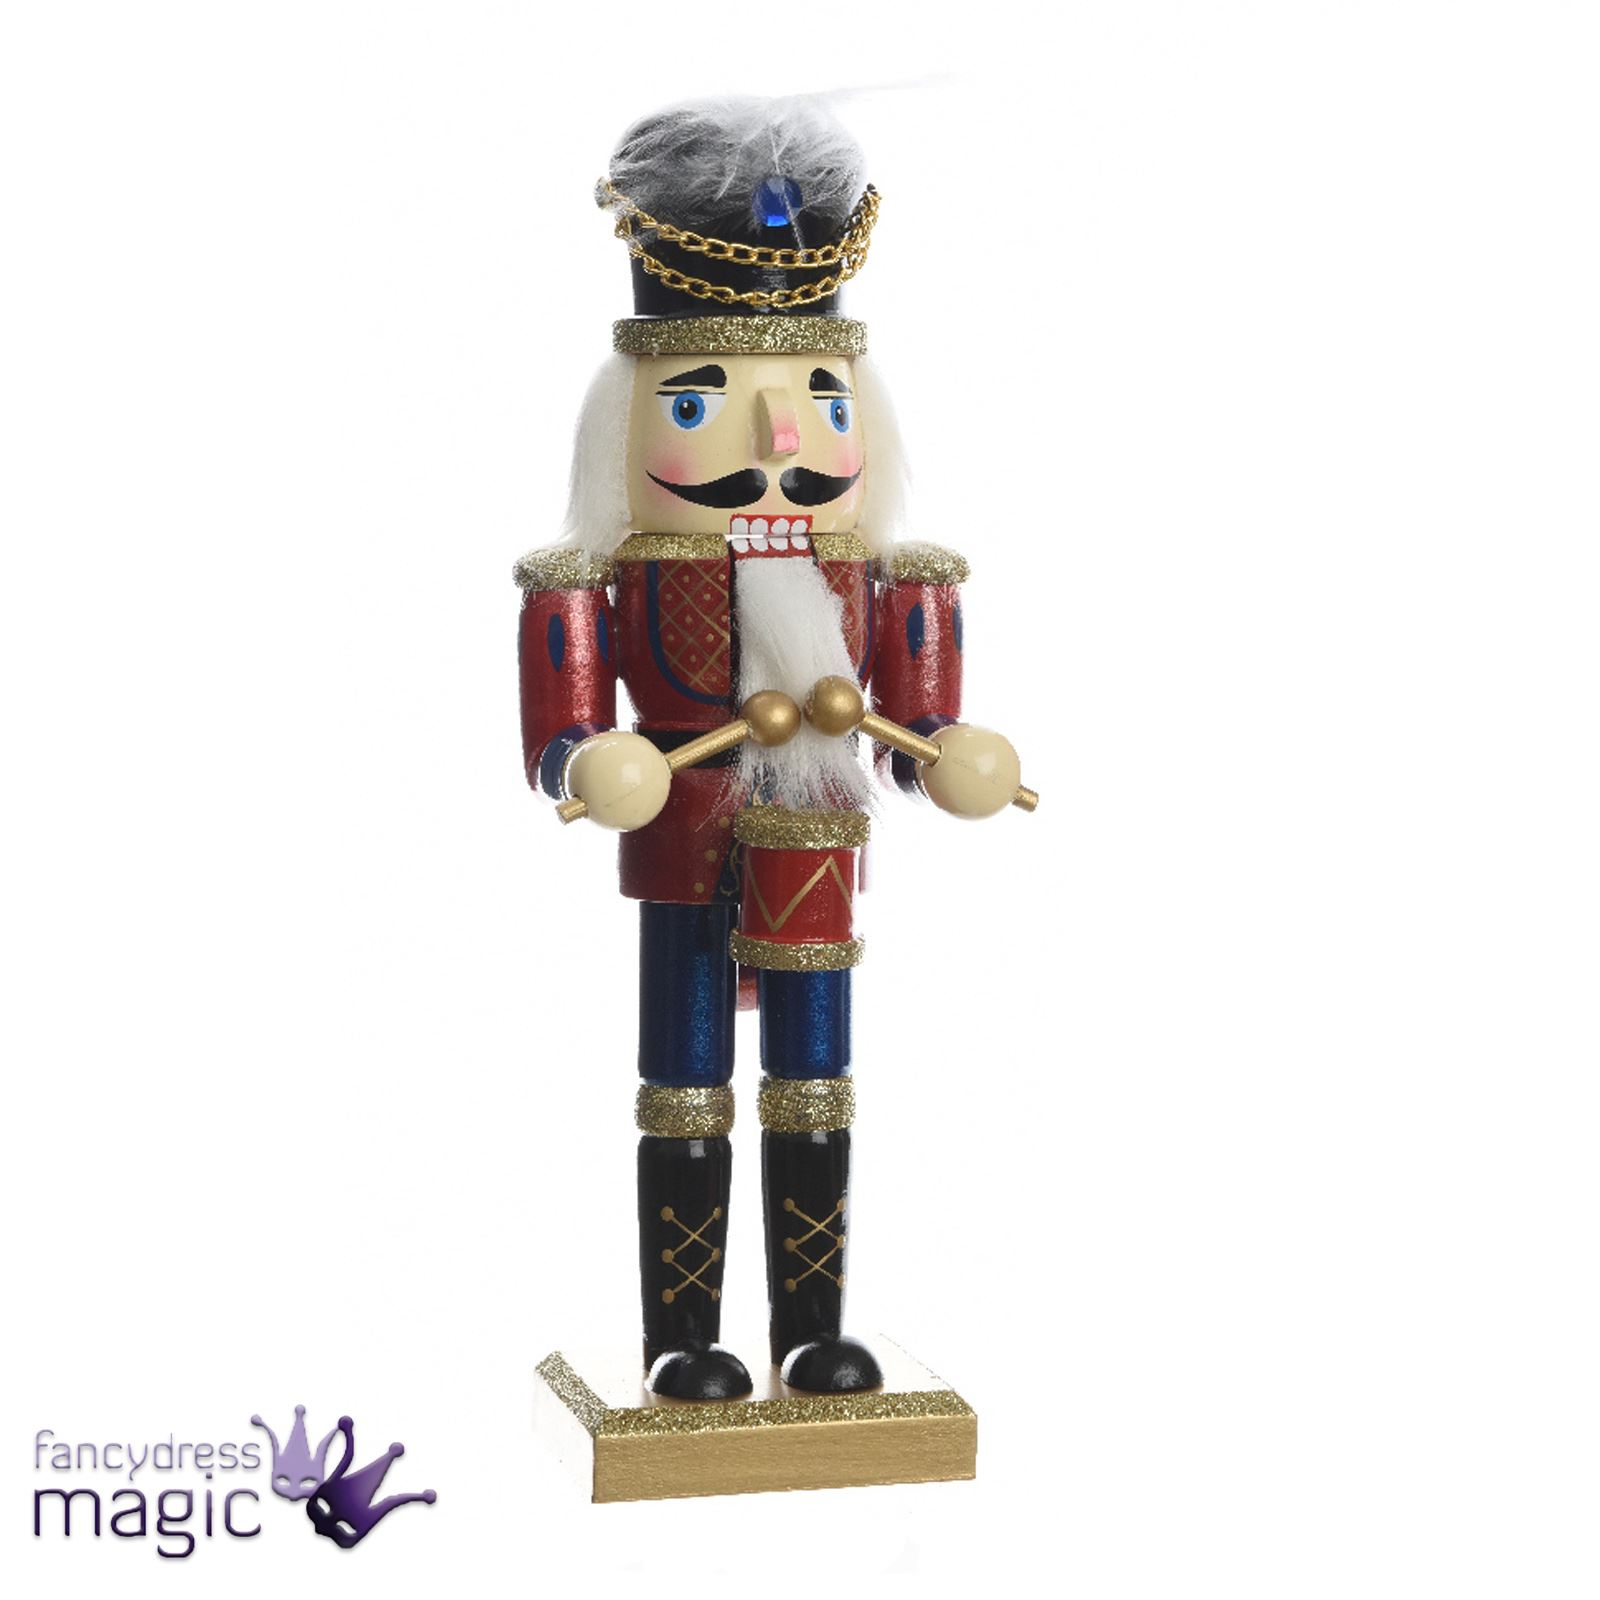 Kaemingk Wood Traditional Soldier Nutcracker Christmas Ornament ...